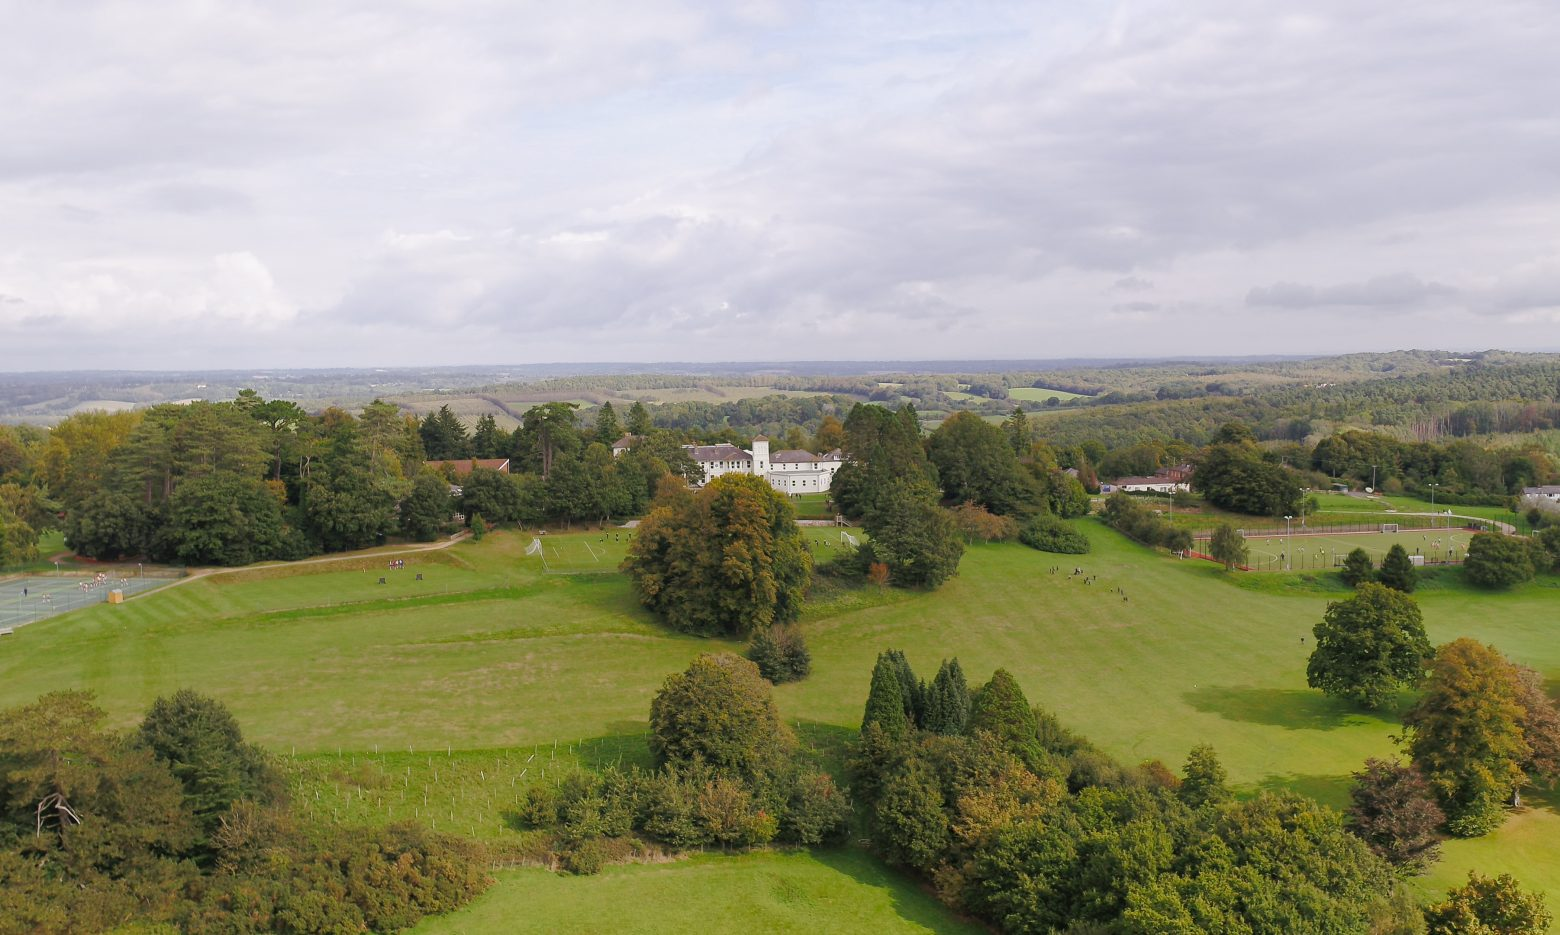 Vinehall Grounds